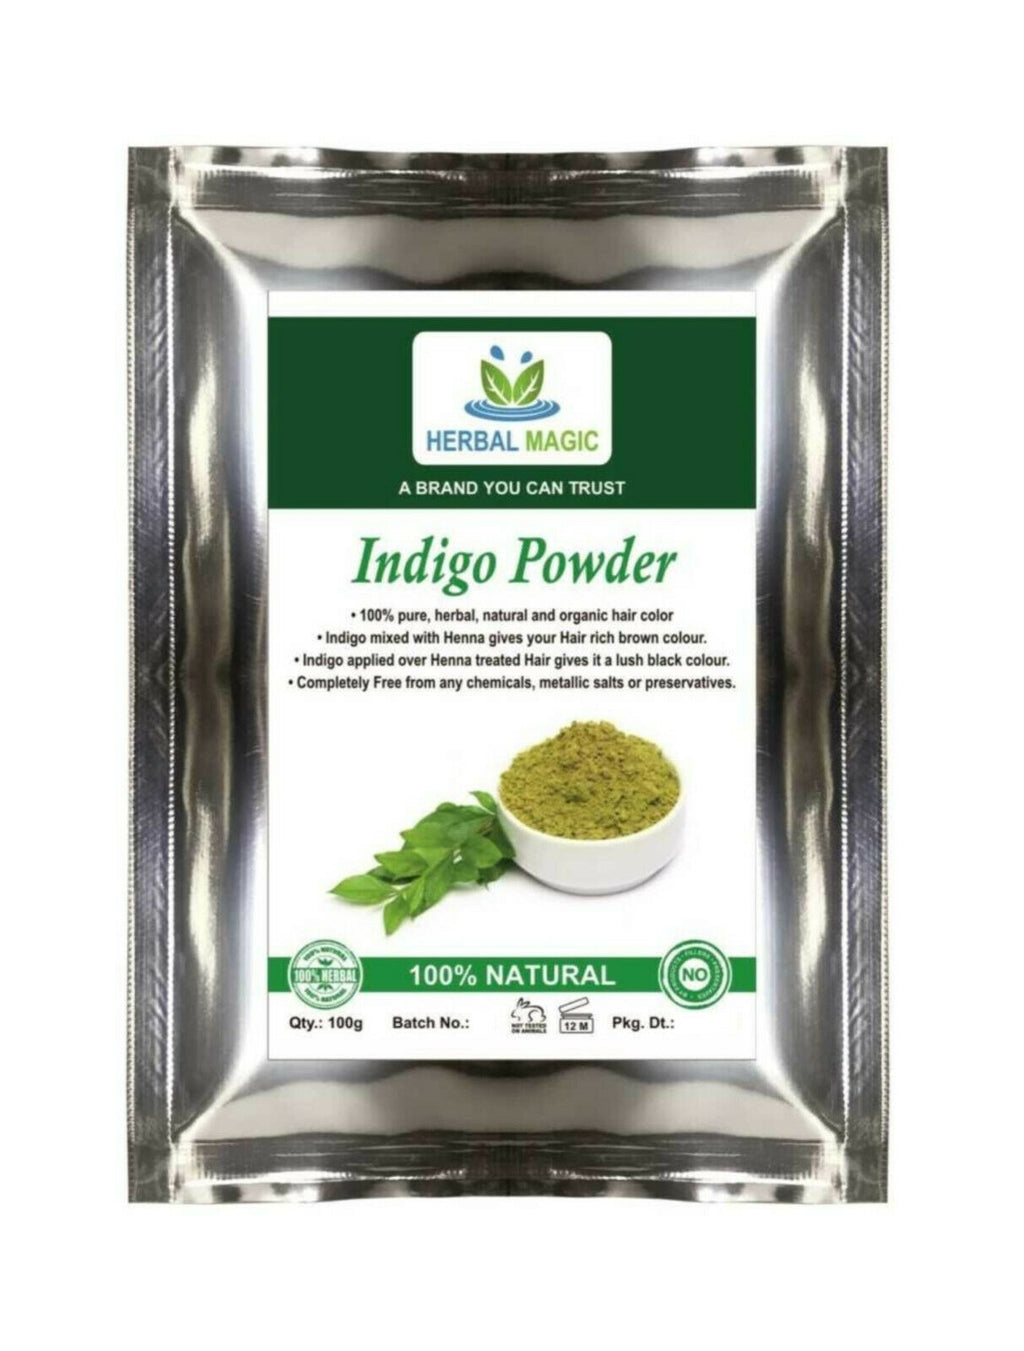 500g Organic Indigo Powder, Simply mix with Henna For Brown/Black hair color